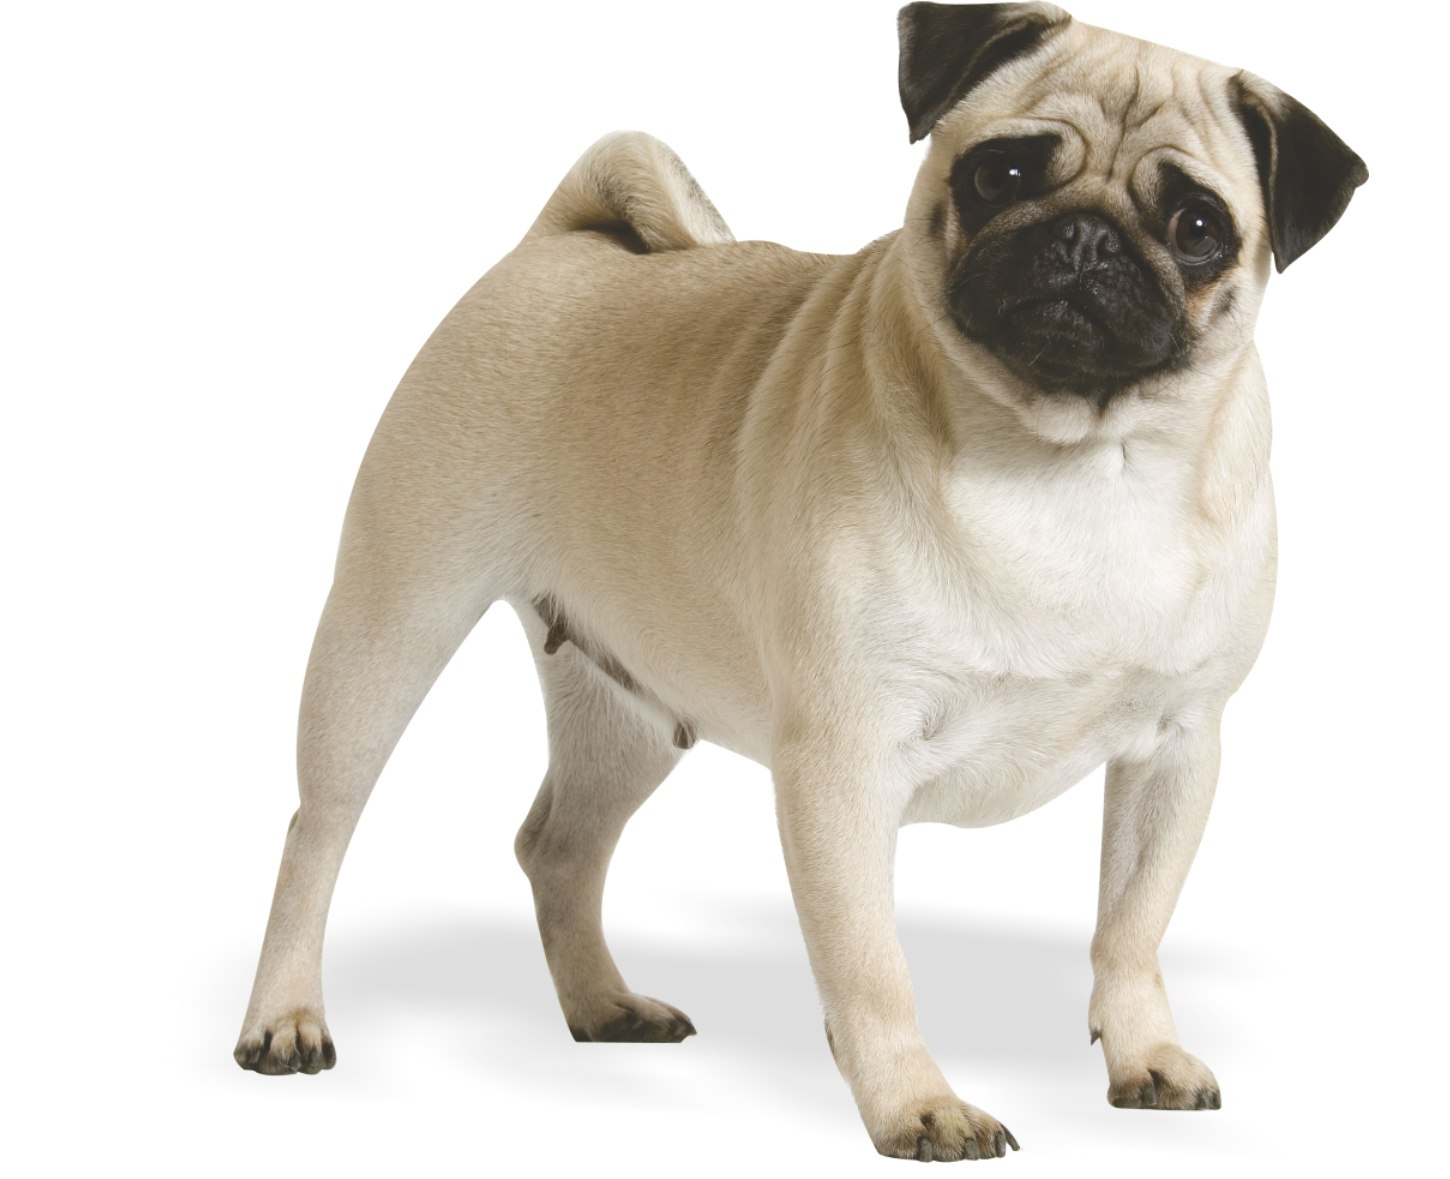 A small breed dog - the pug